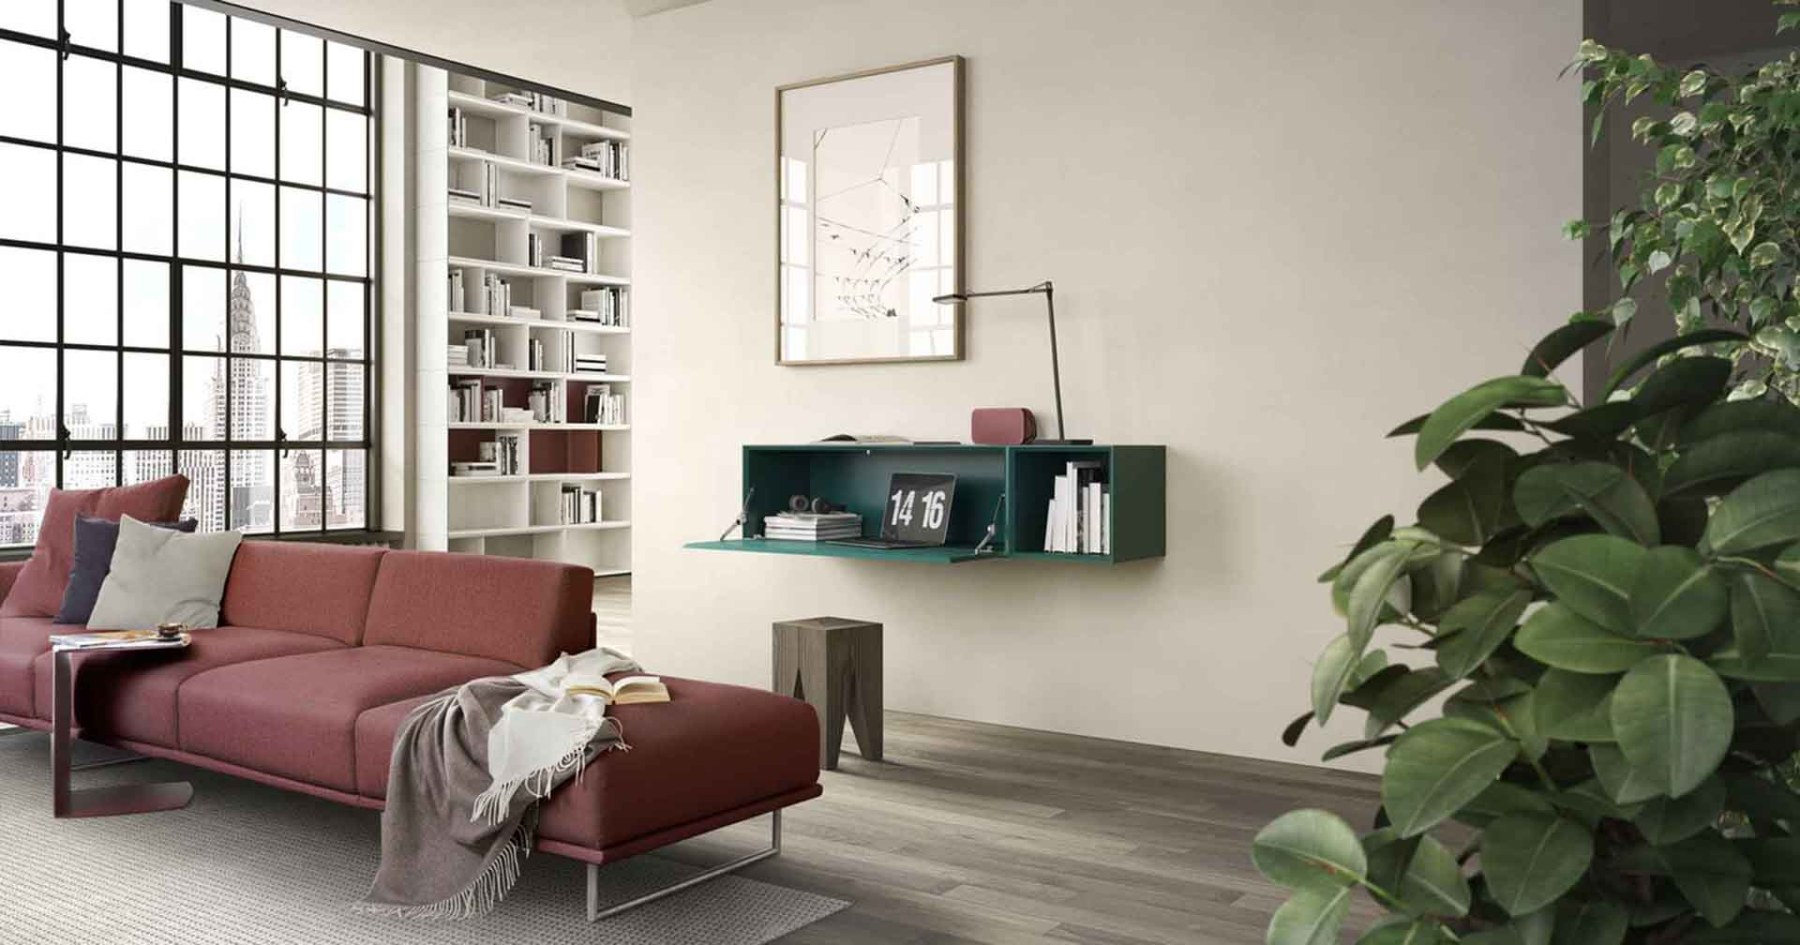 CIVIL Makes High-End Scandinavian Furniture for Half the Cost